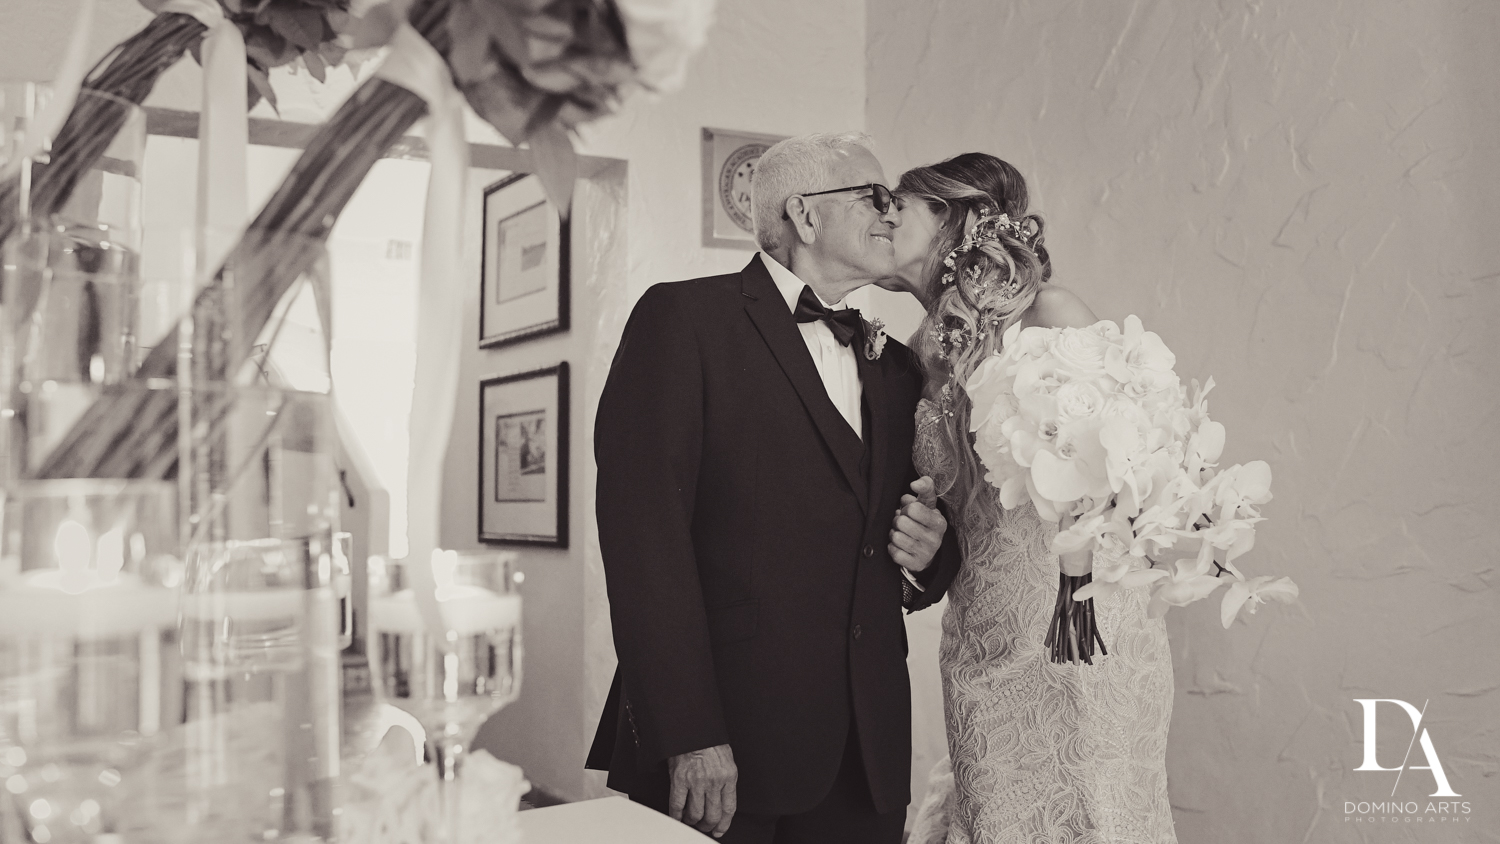 Bride and her father last kiss before walking down the aisle at The Addison Boca Raton